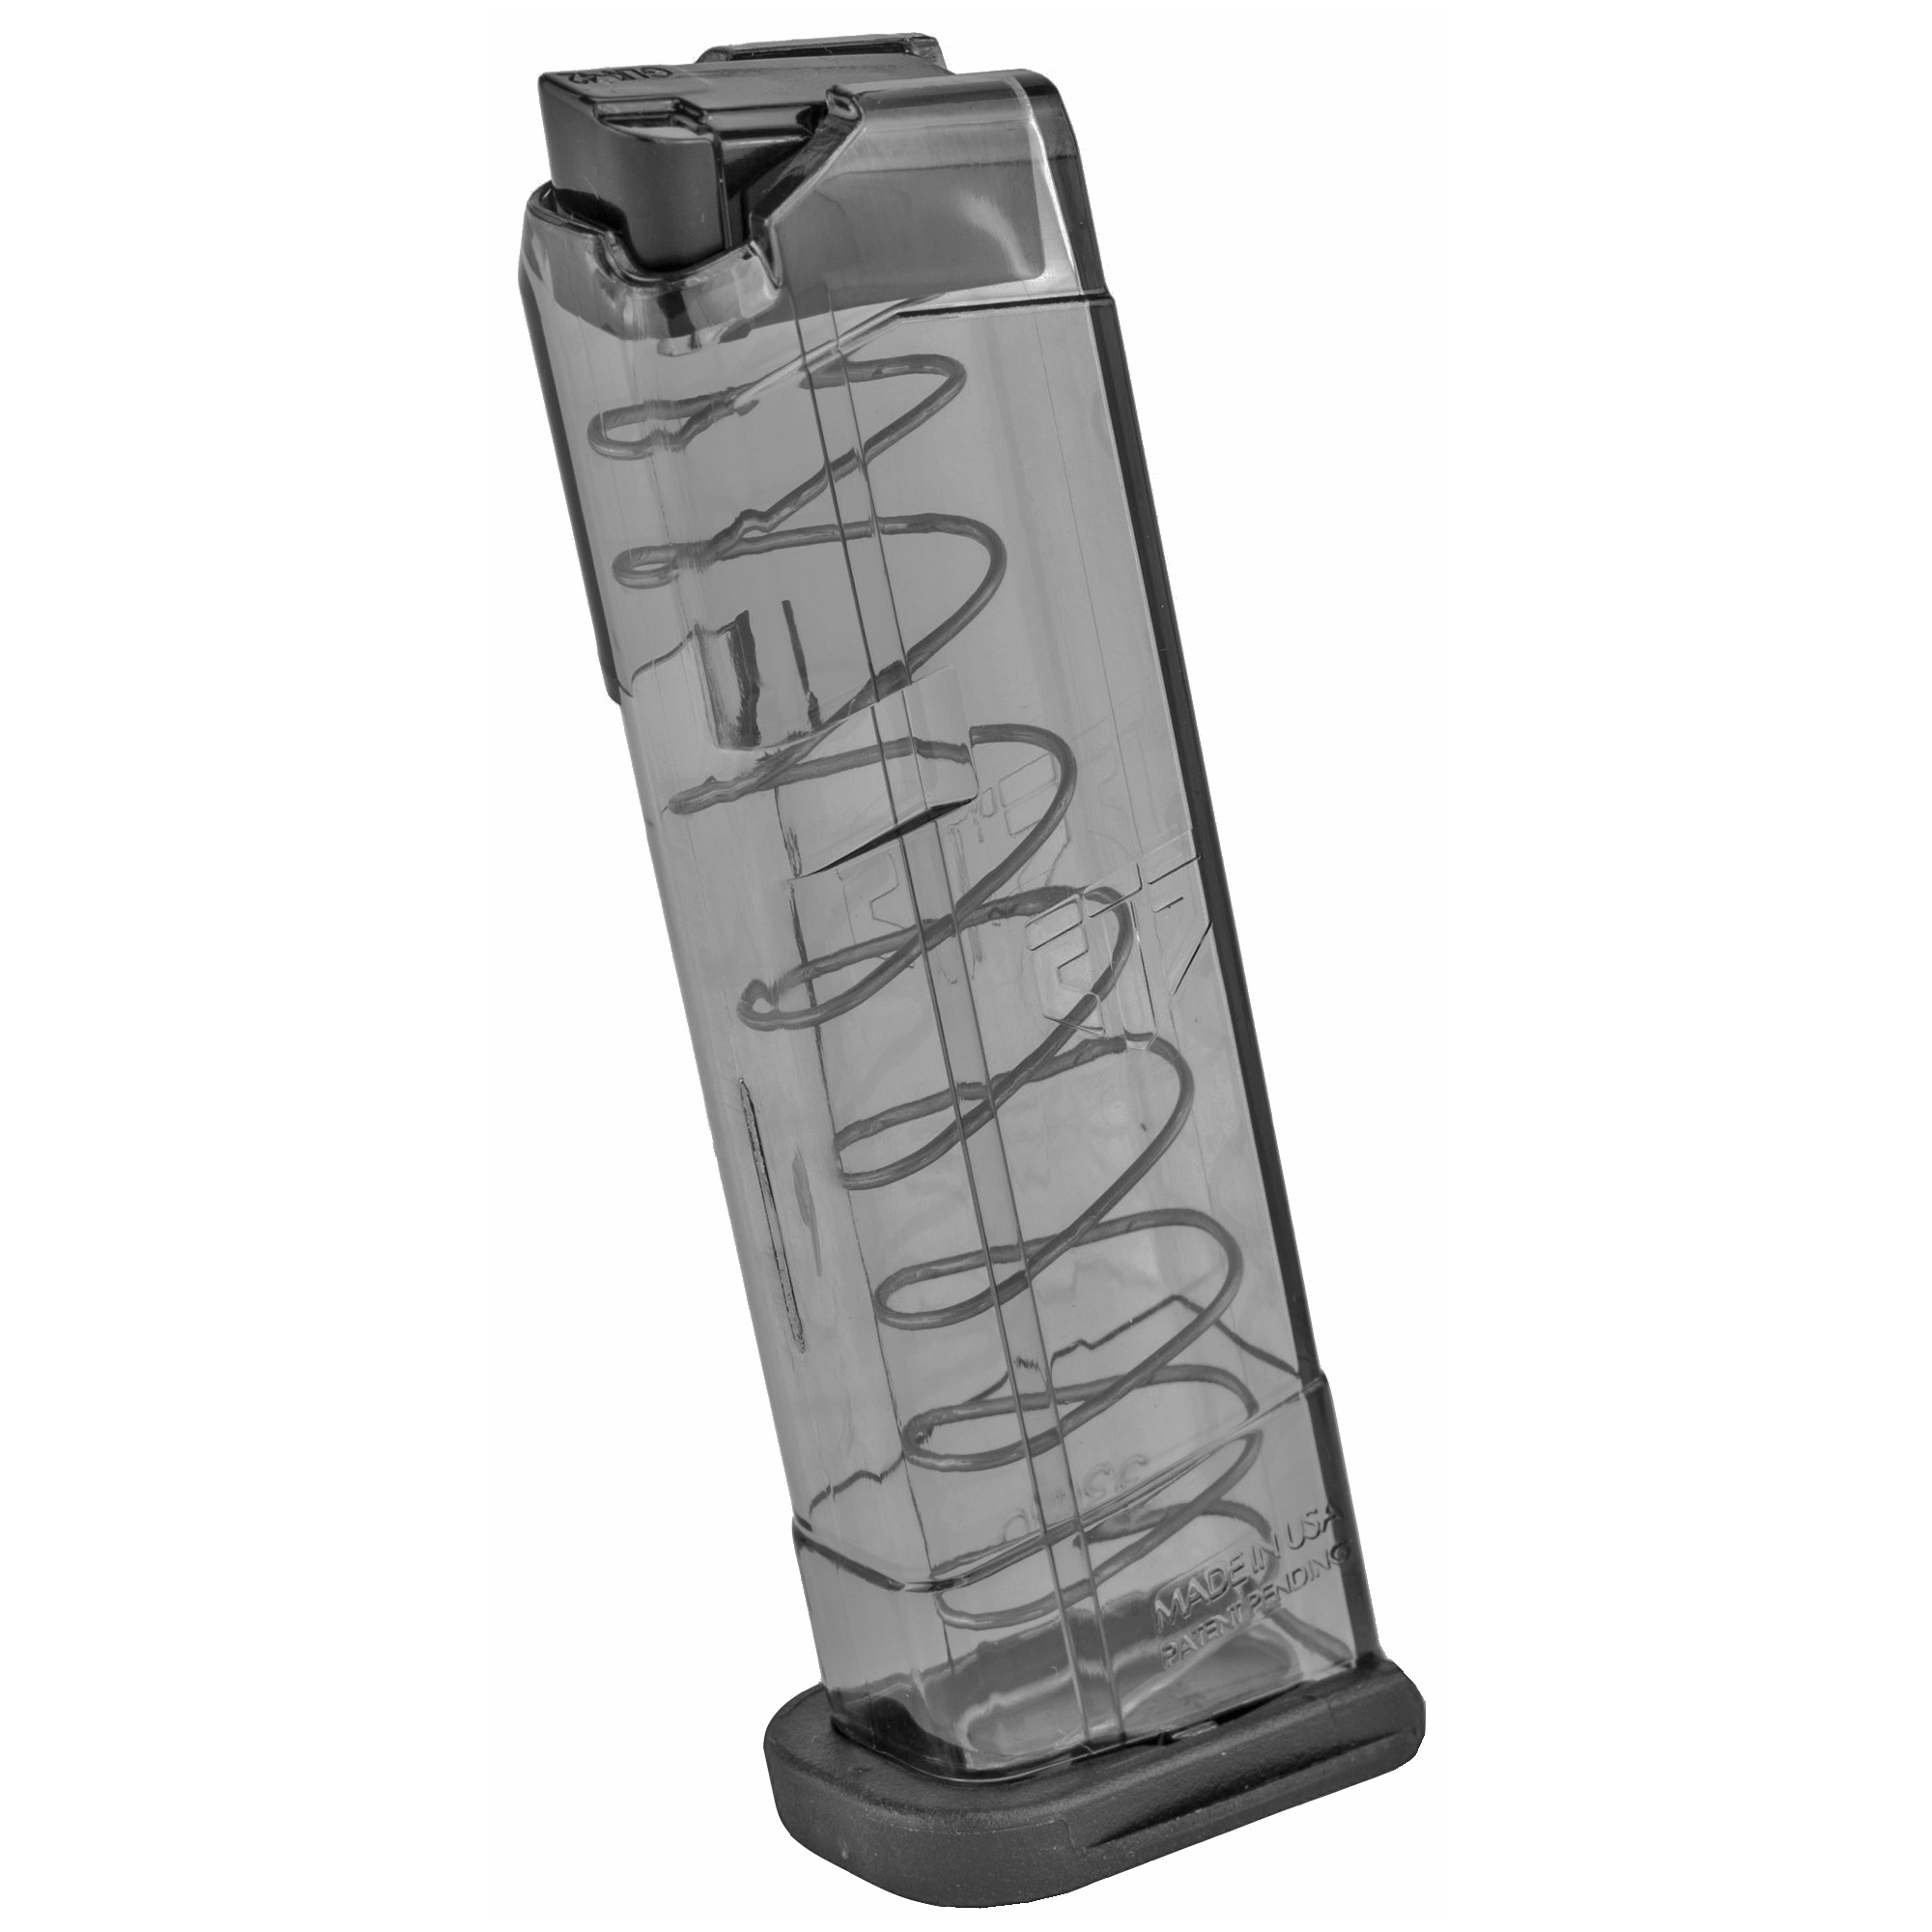 Ets Mag For Glk 42 380acp 9rd Smoke